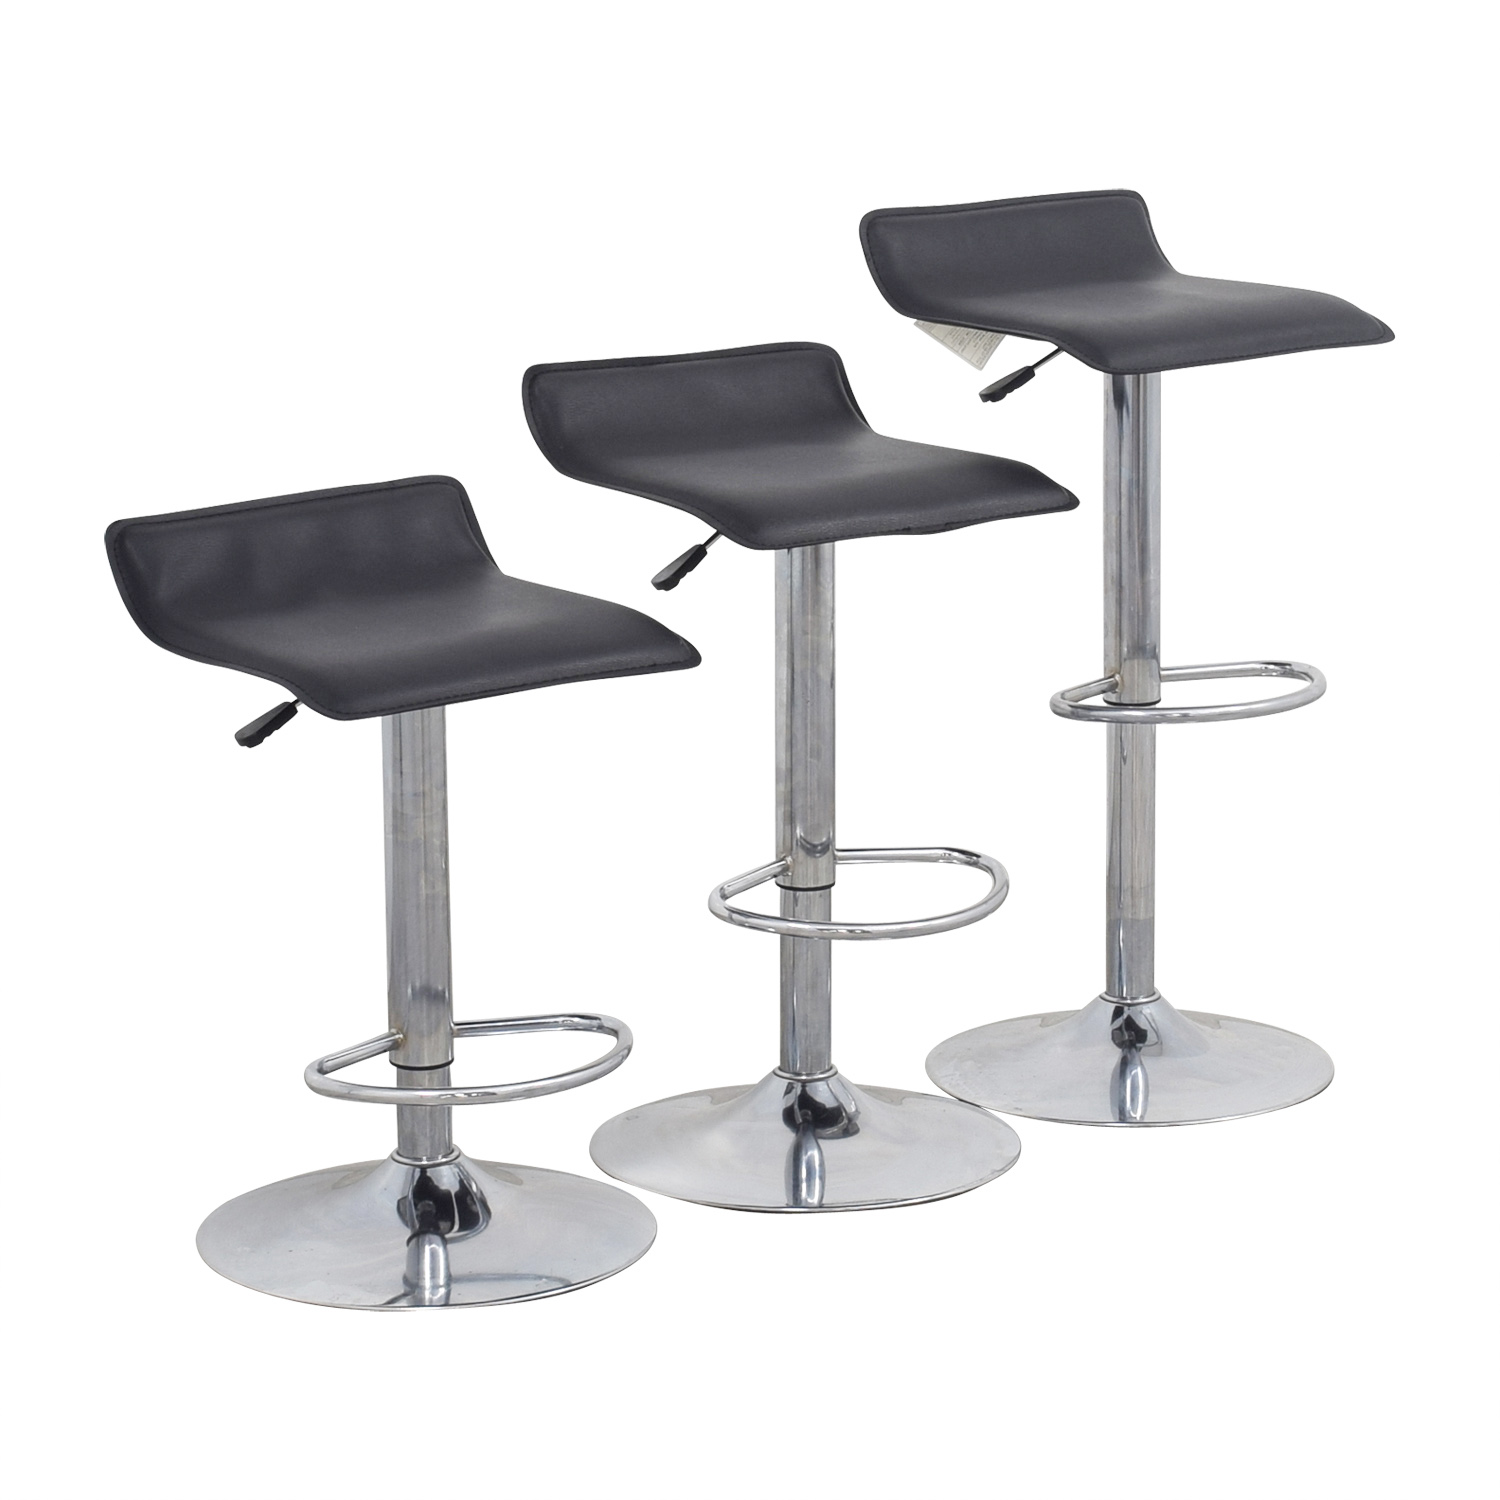 black chairs target under 100 2 88 off adjustable bar stools